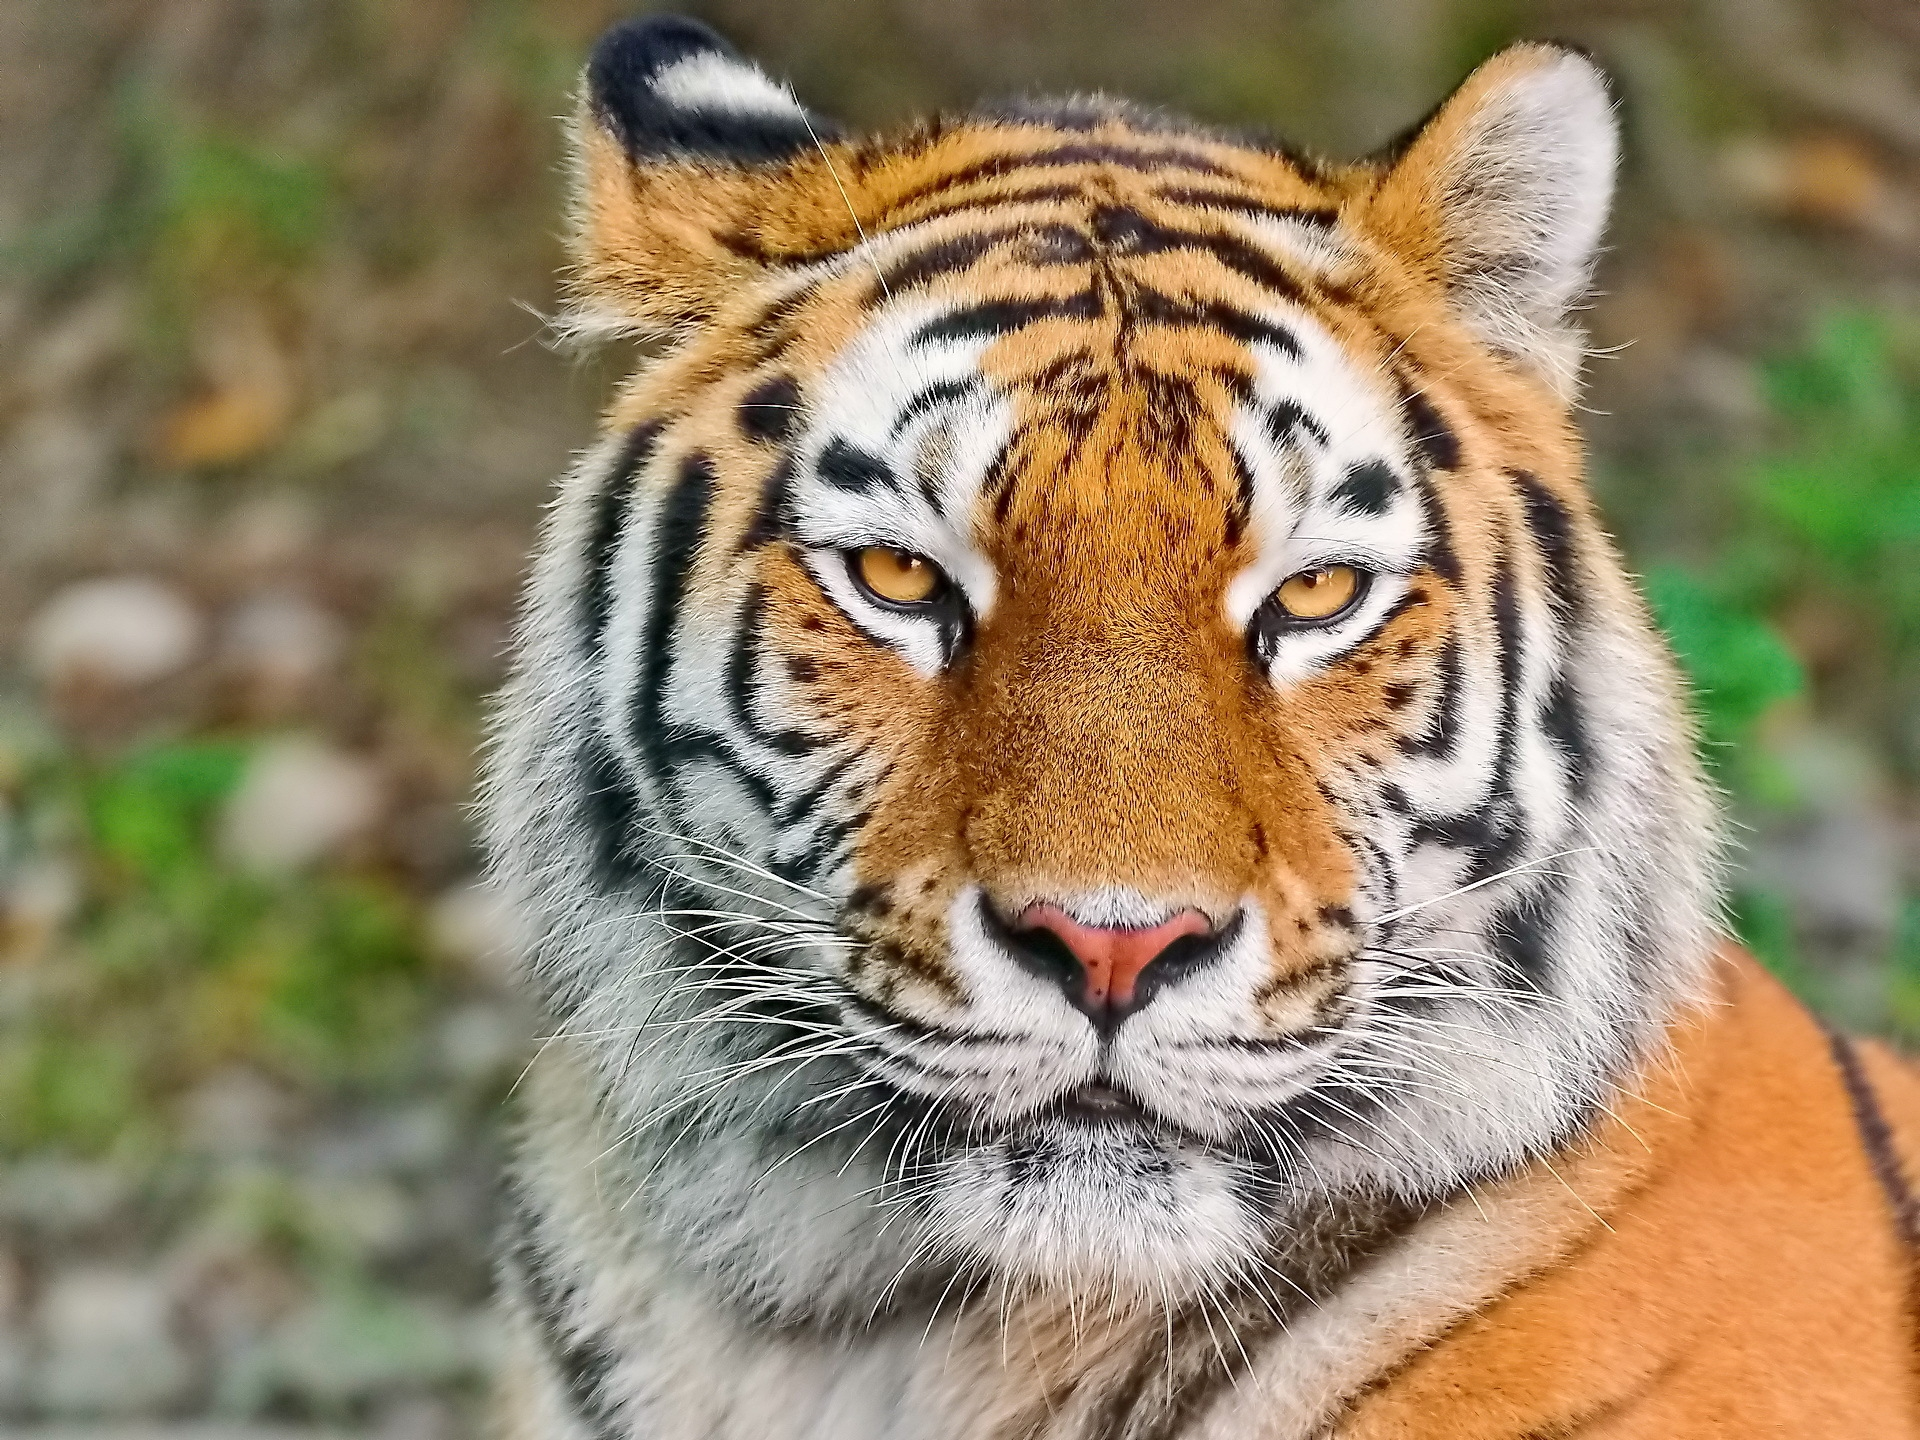 114306 download wallpaper Animals, Tiger, Muzzle, Sight, Opinion, Aggression, Predator screensavers and pictures for free